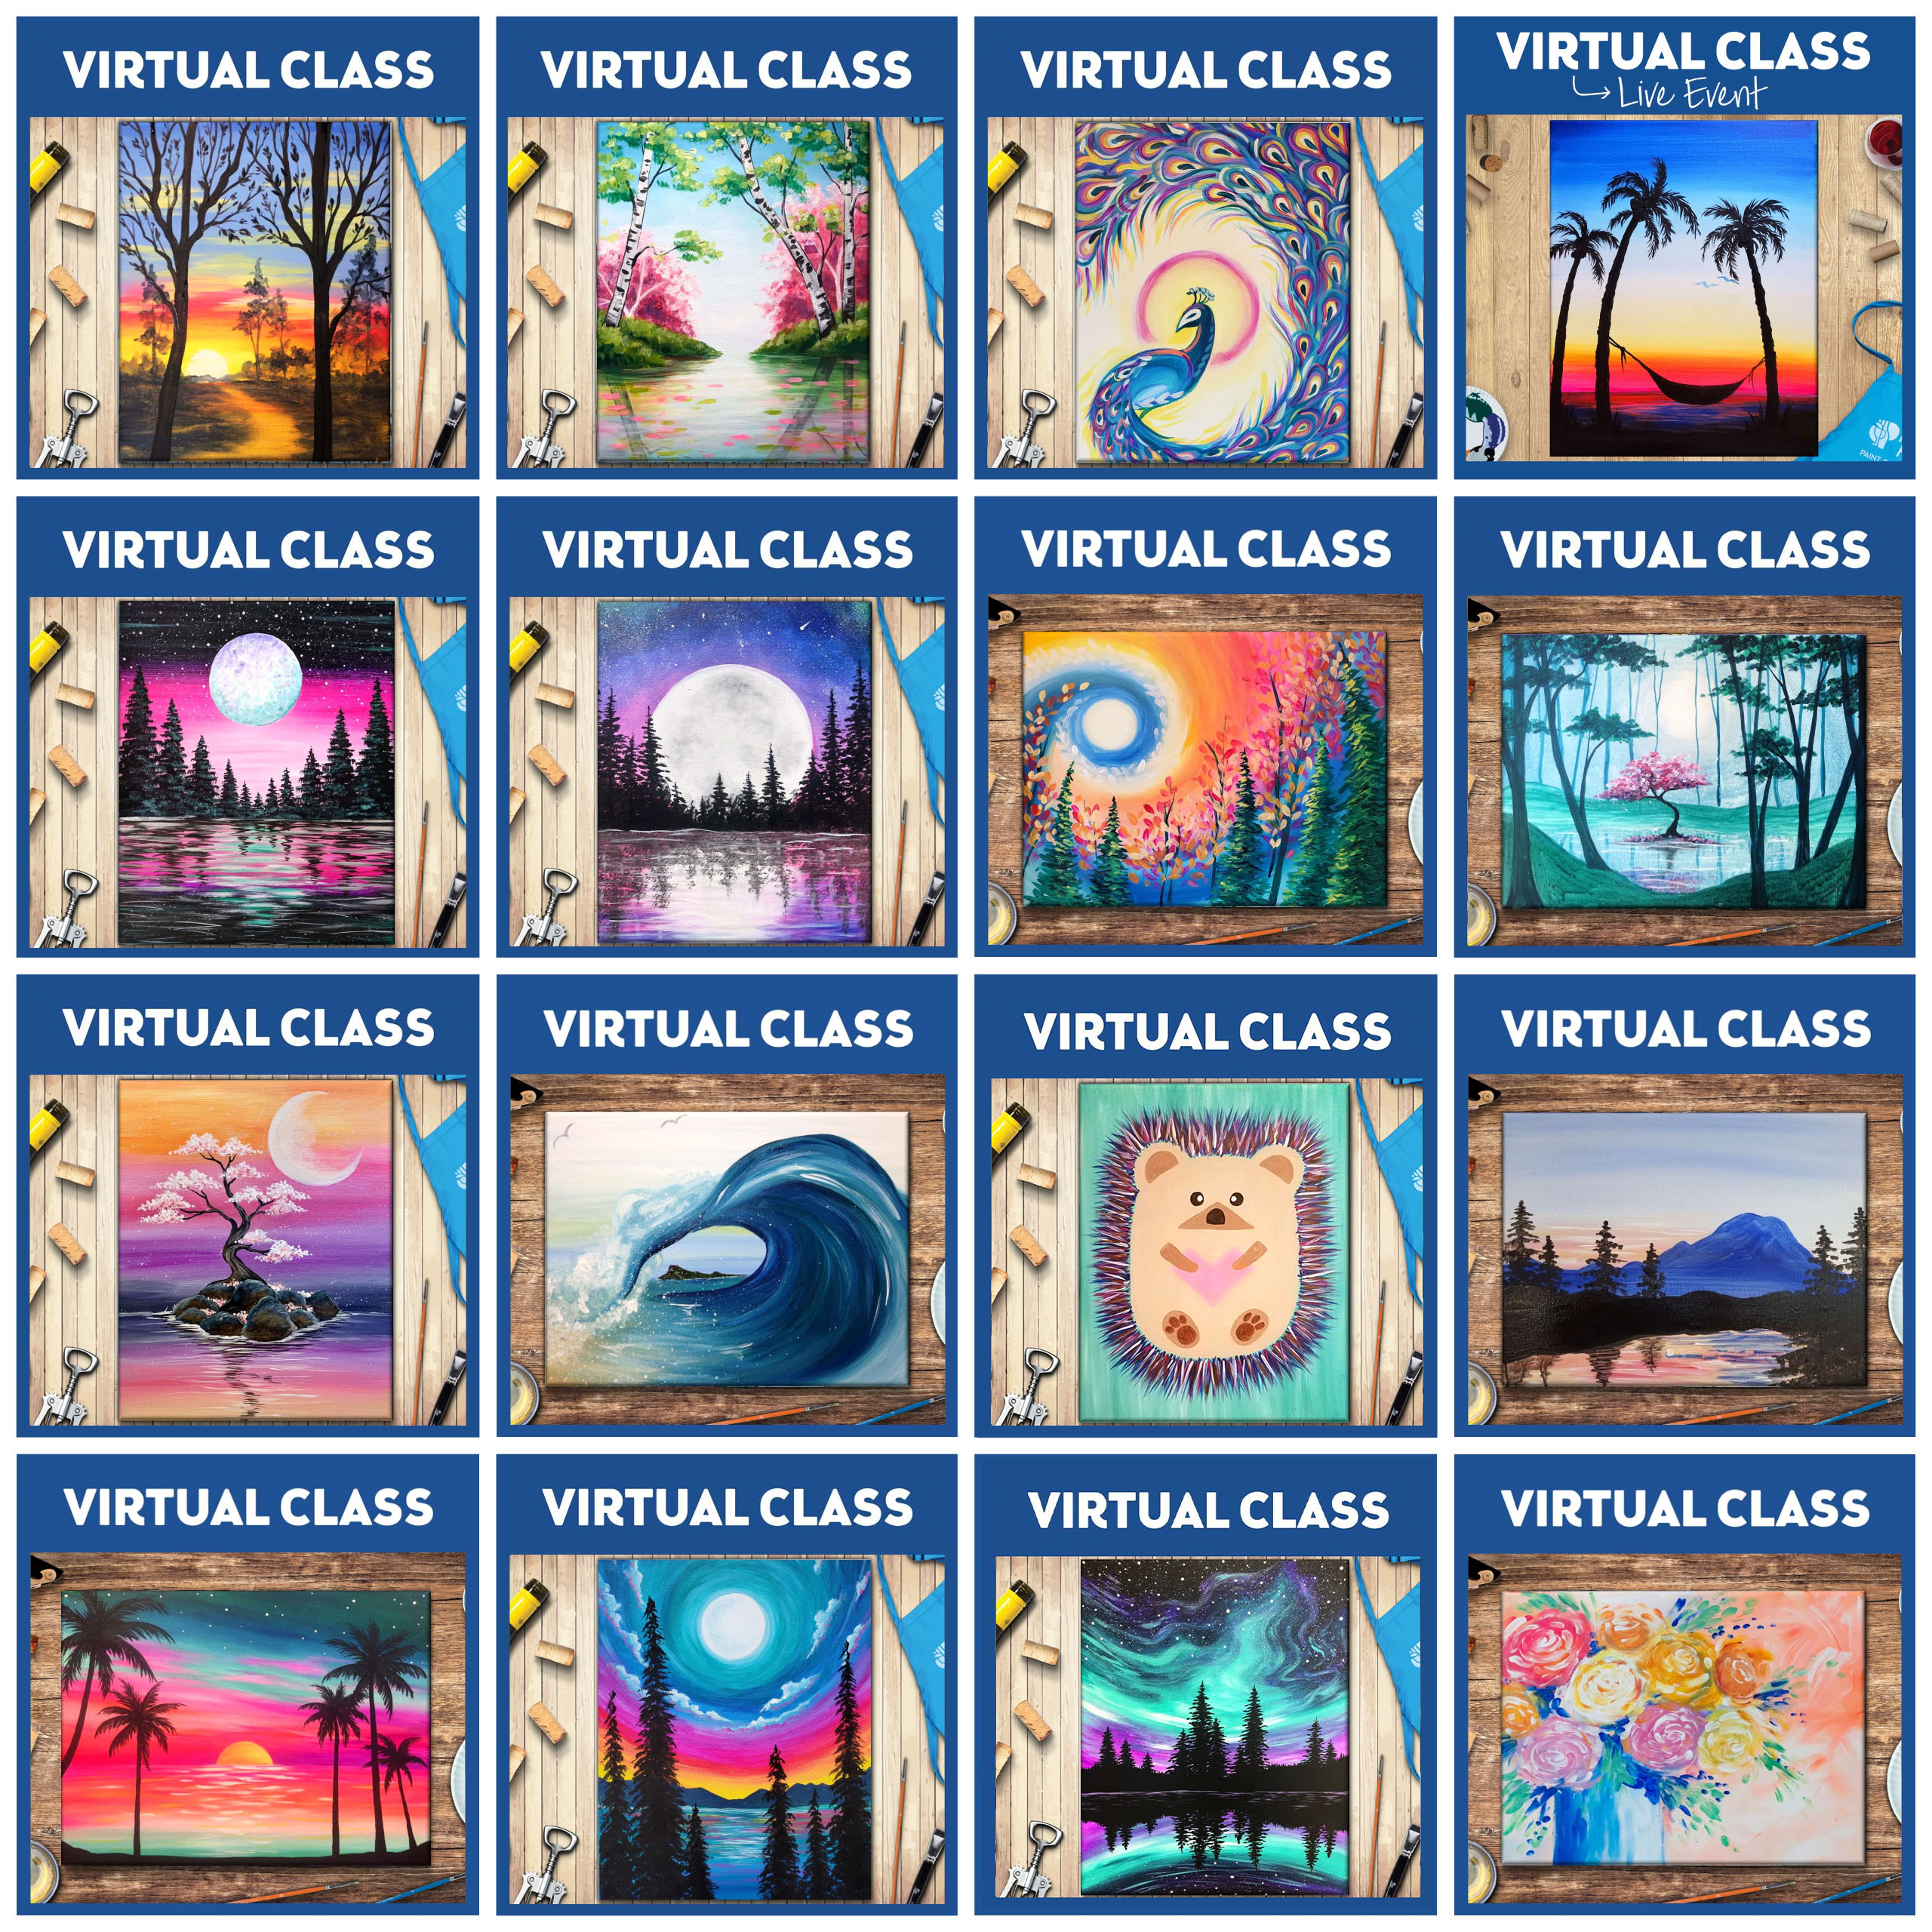 New Round of On Demand Virtual Classes Added